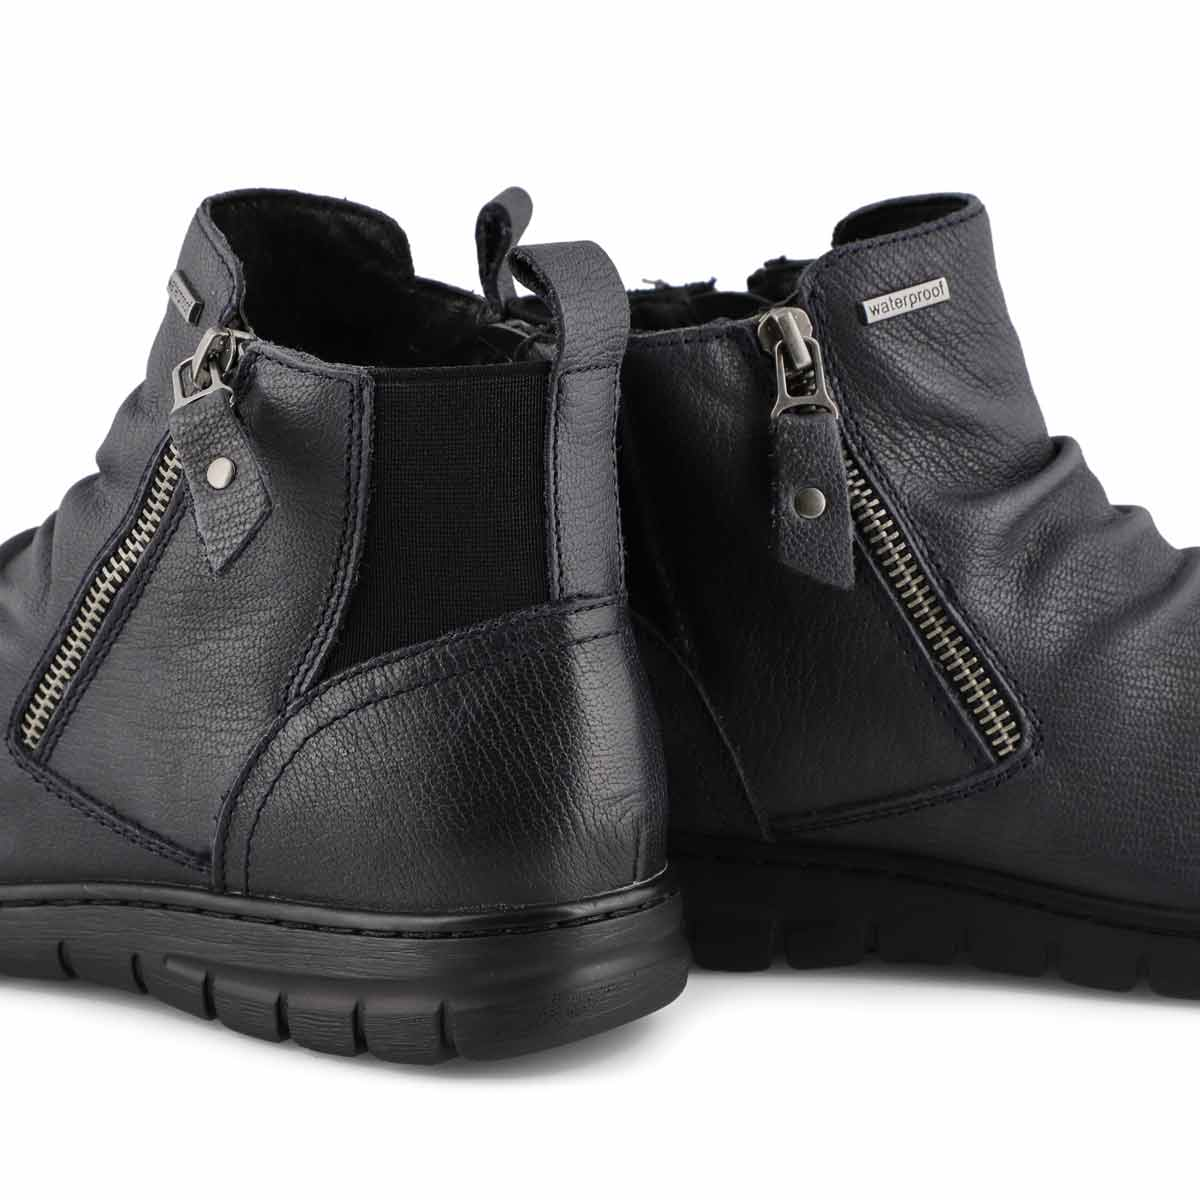 Lds Steffi 71 navy wtpf ankle boot